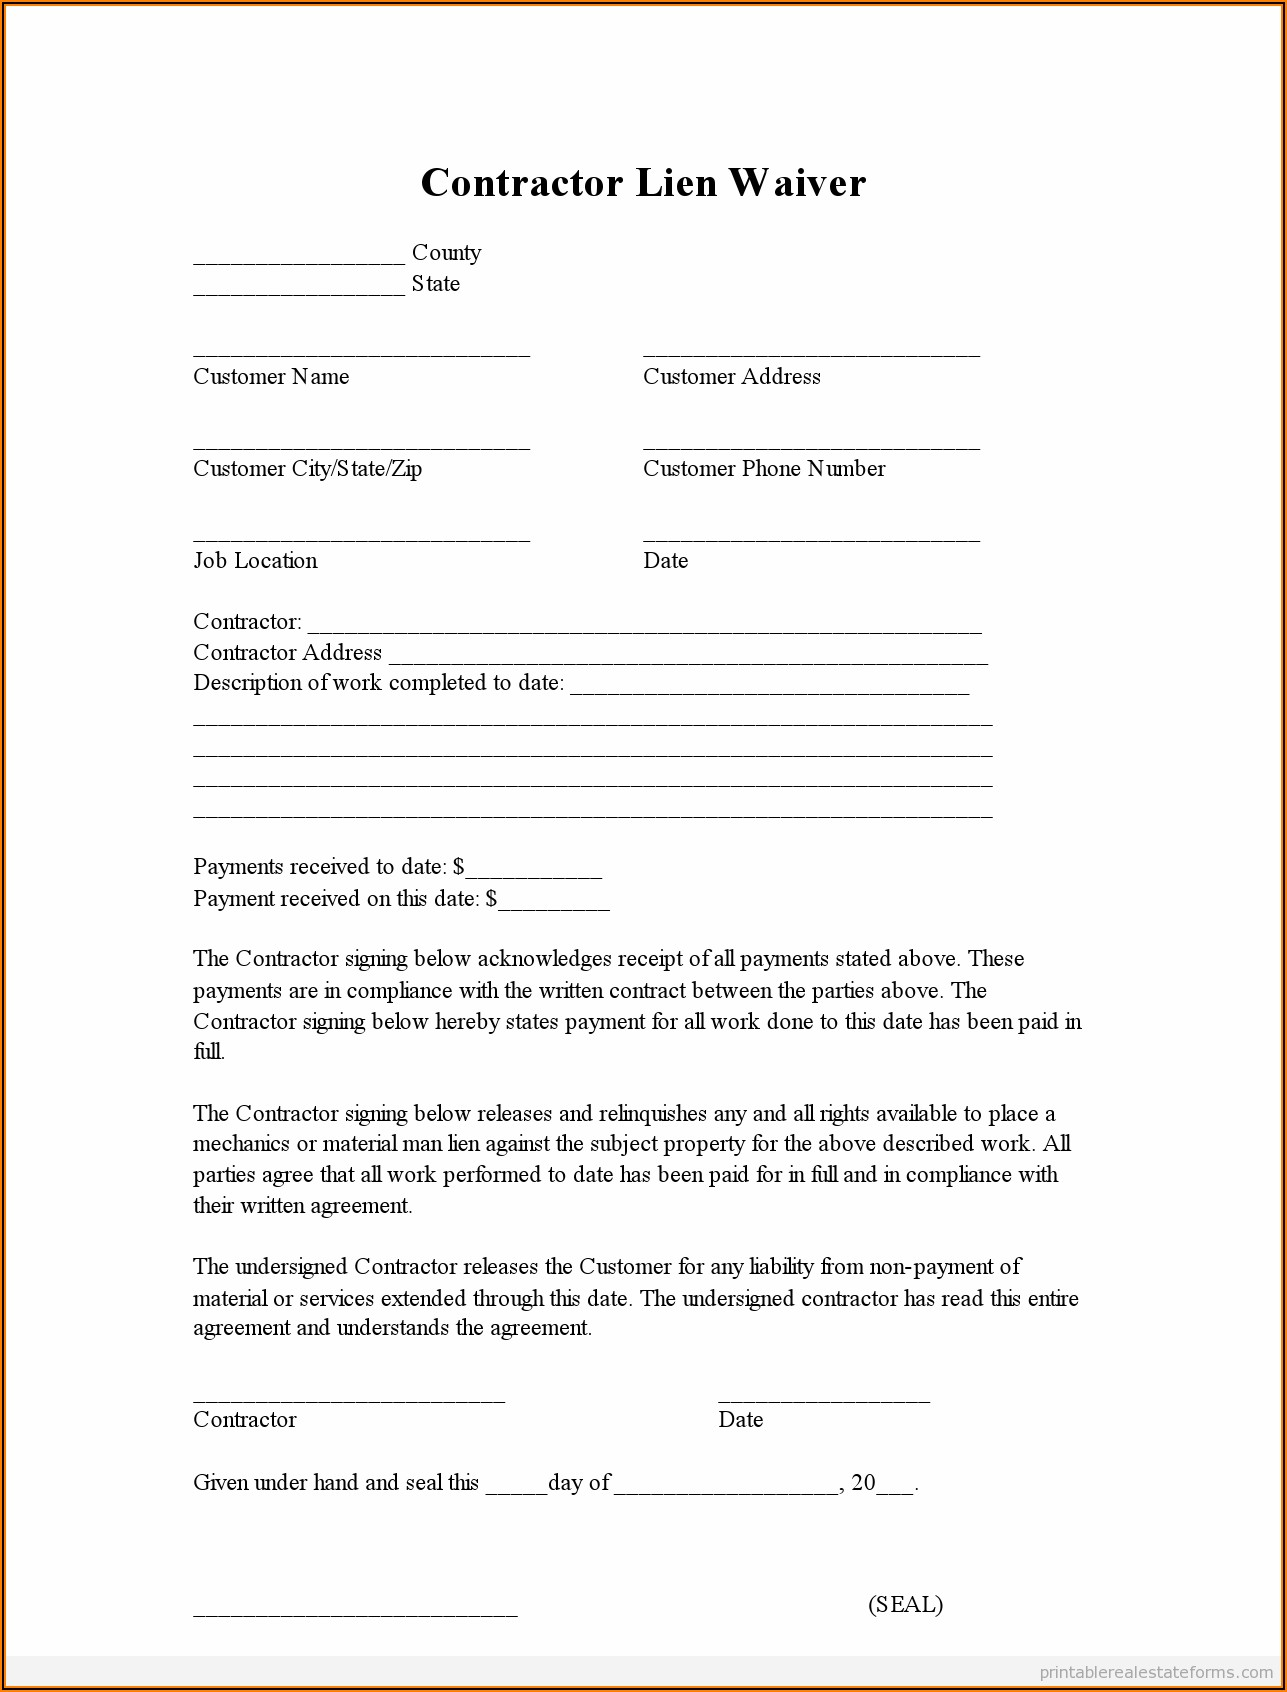 Mechanics Lien Waiver Form Pdf